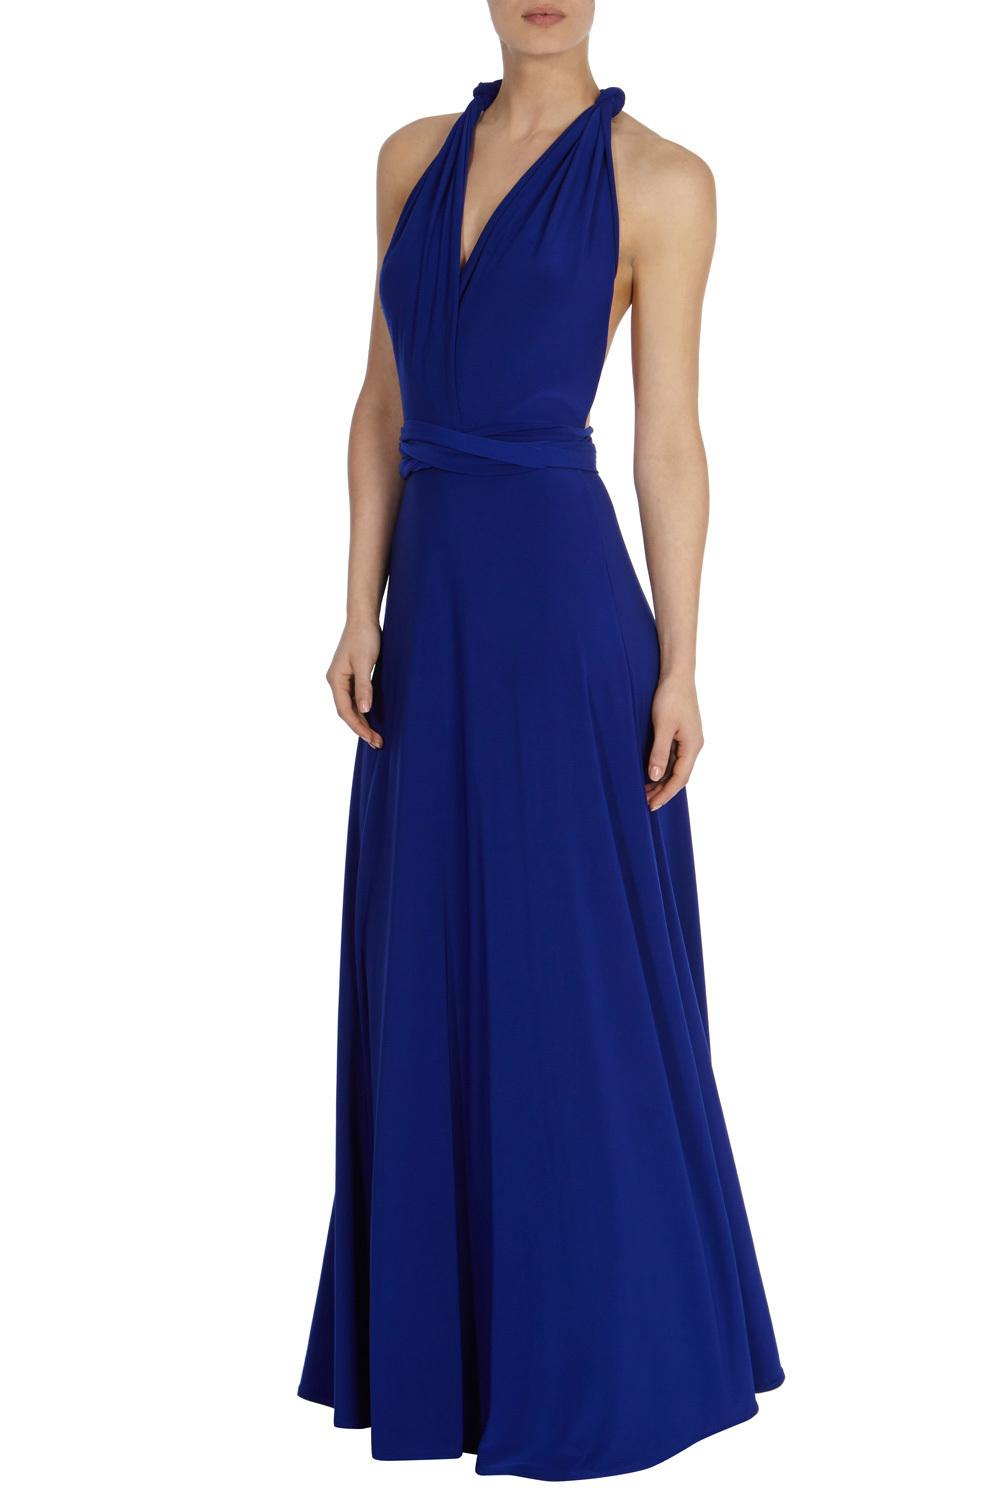 Corwin Multi Tie Dress - neckline: low v-neck; fit: fitted at waist; pattern: plain; sleeve style: sleeveless; style: maxi dress; predominant colour: royal blue; occasions: evening, occasion; length: floor length; fibres: polyester/polyamide - 100%; sleeve length: sleeveless; pattern type: fabric; texture group: jersey - stretchy/drapey; season: a/w 2015; wardrobe: event